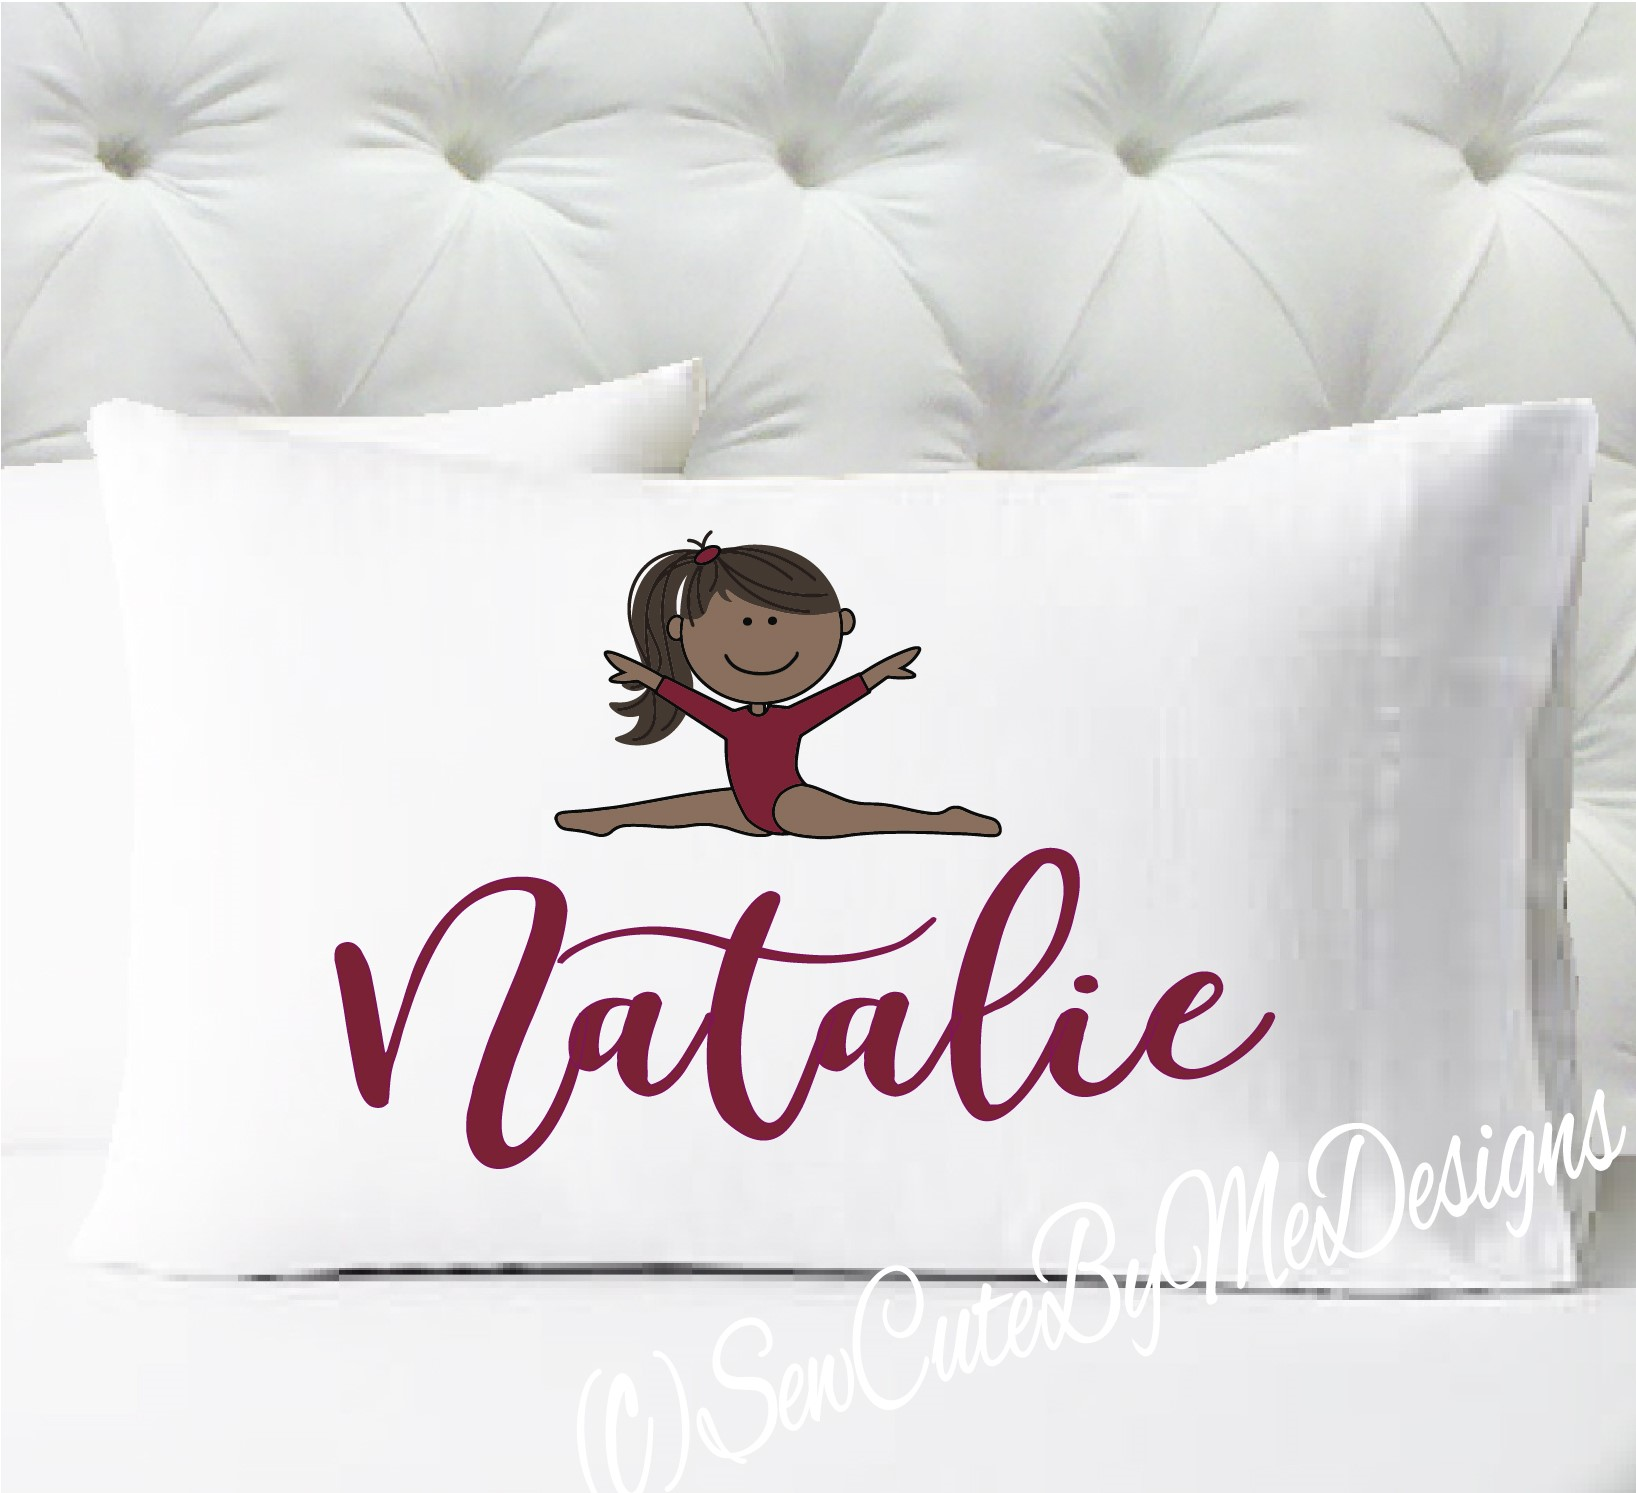 Gymnastics Personalized girls standard size pillow case - dark skin